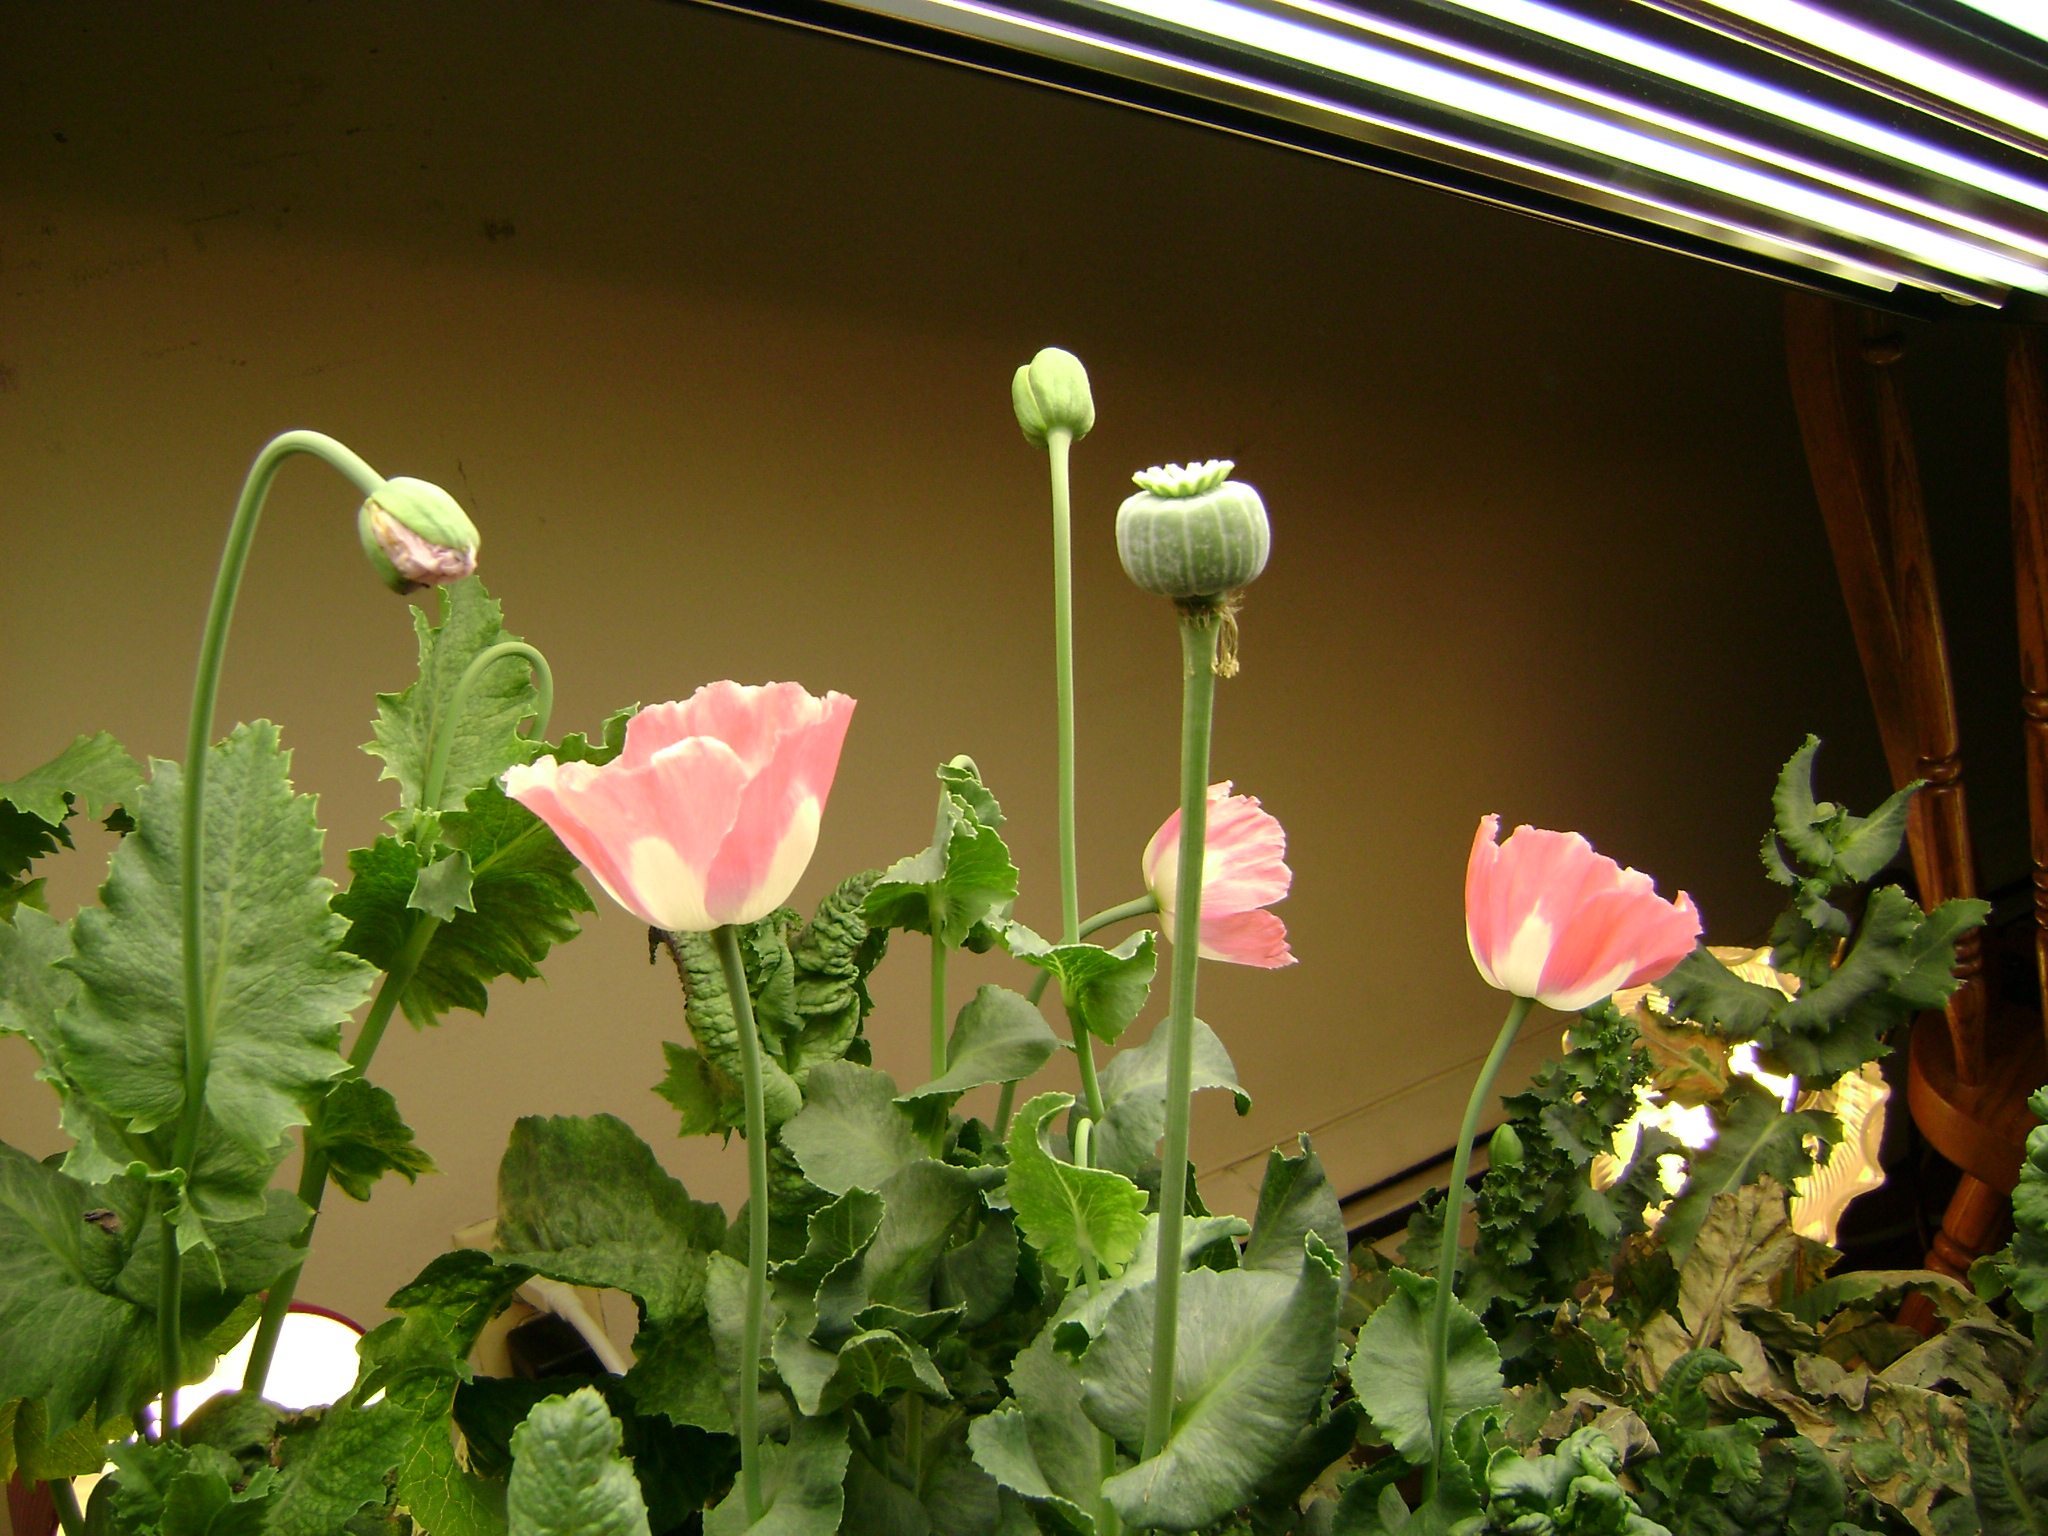 Hydroponic poppies grow log - Page 4 - Poppies, Opium, etc. - Mycotopia